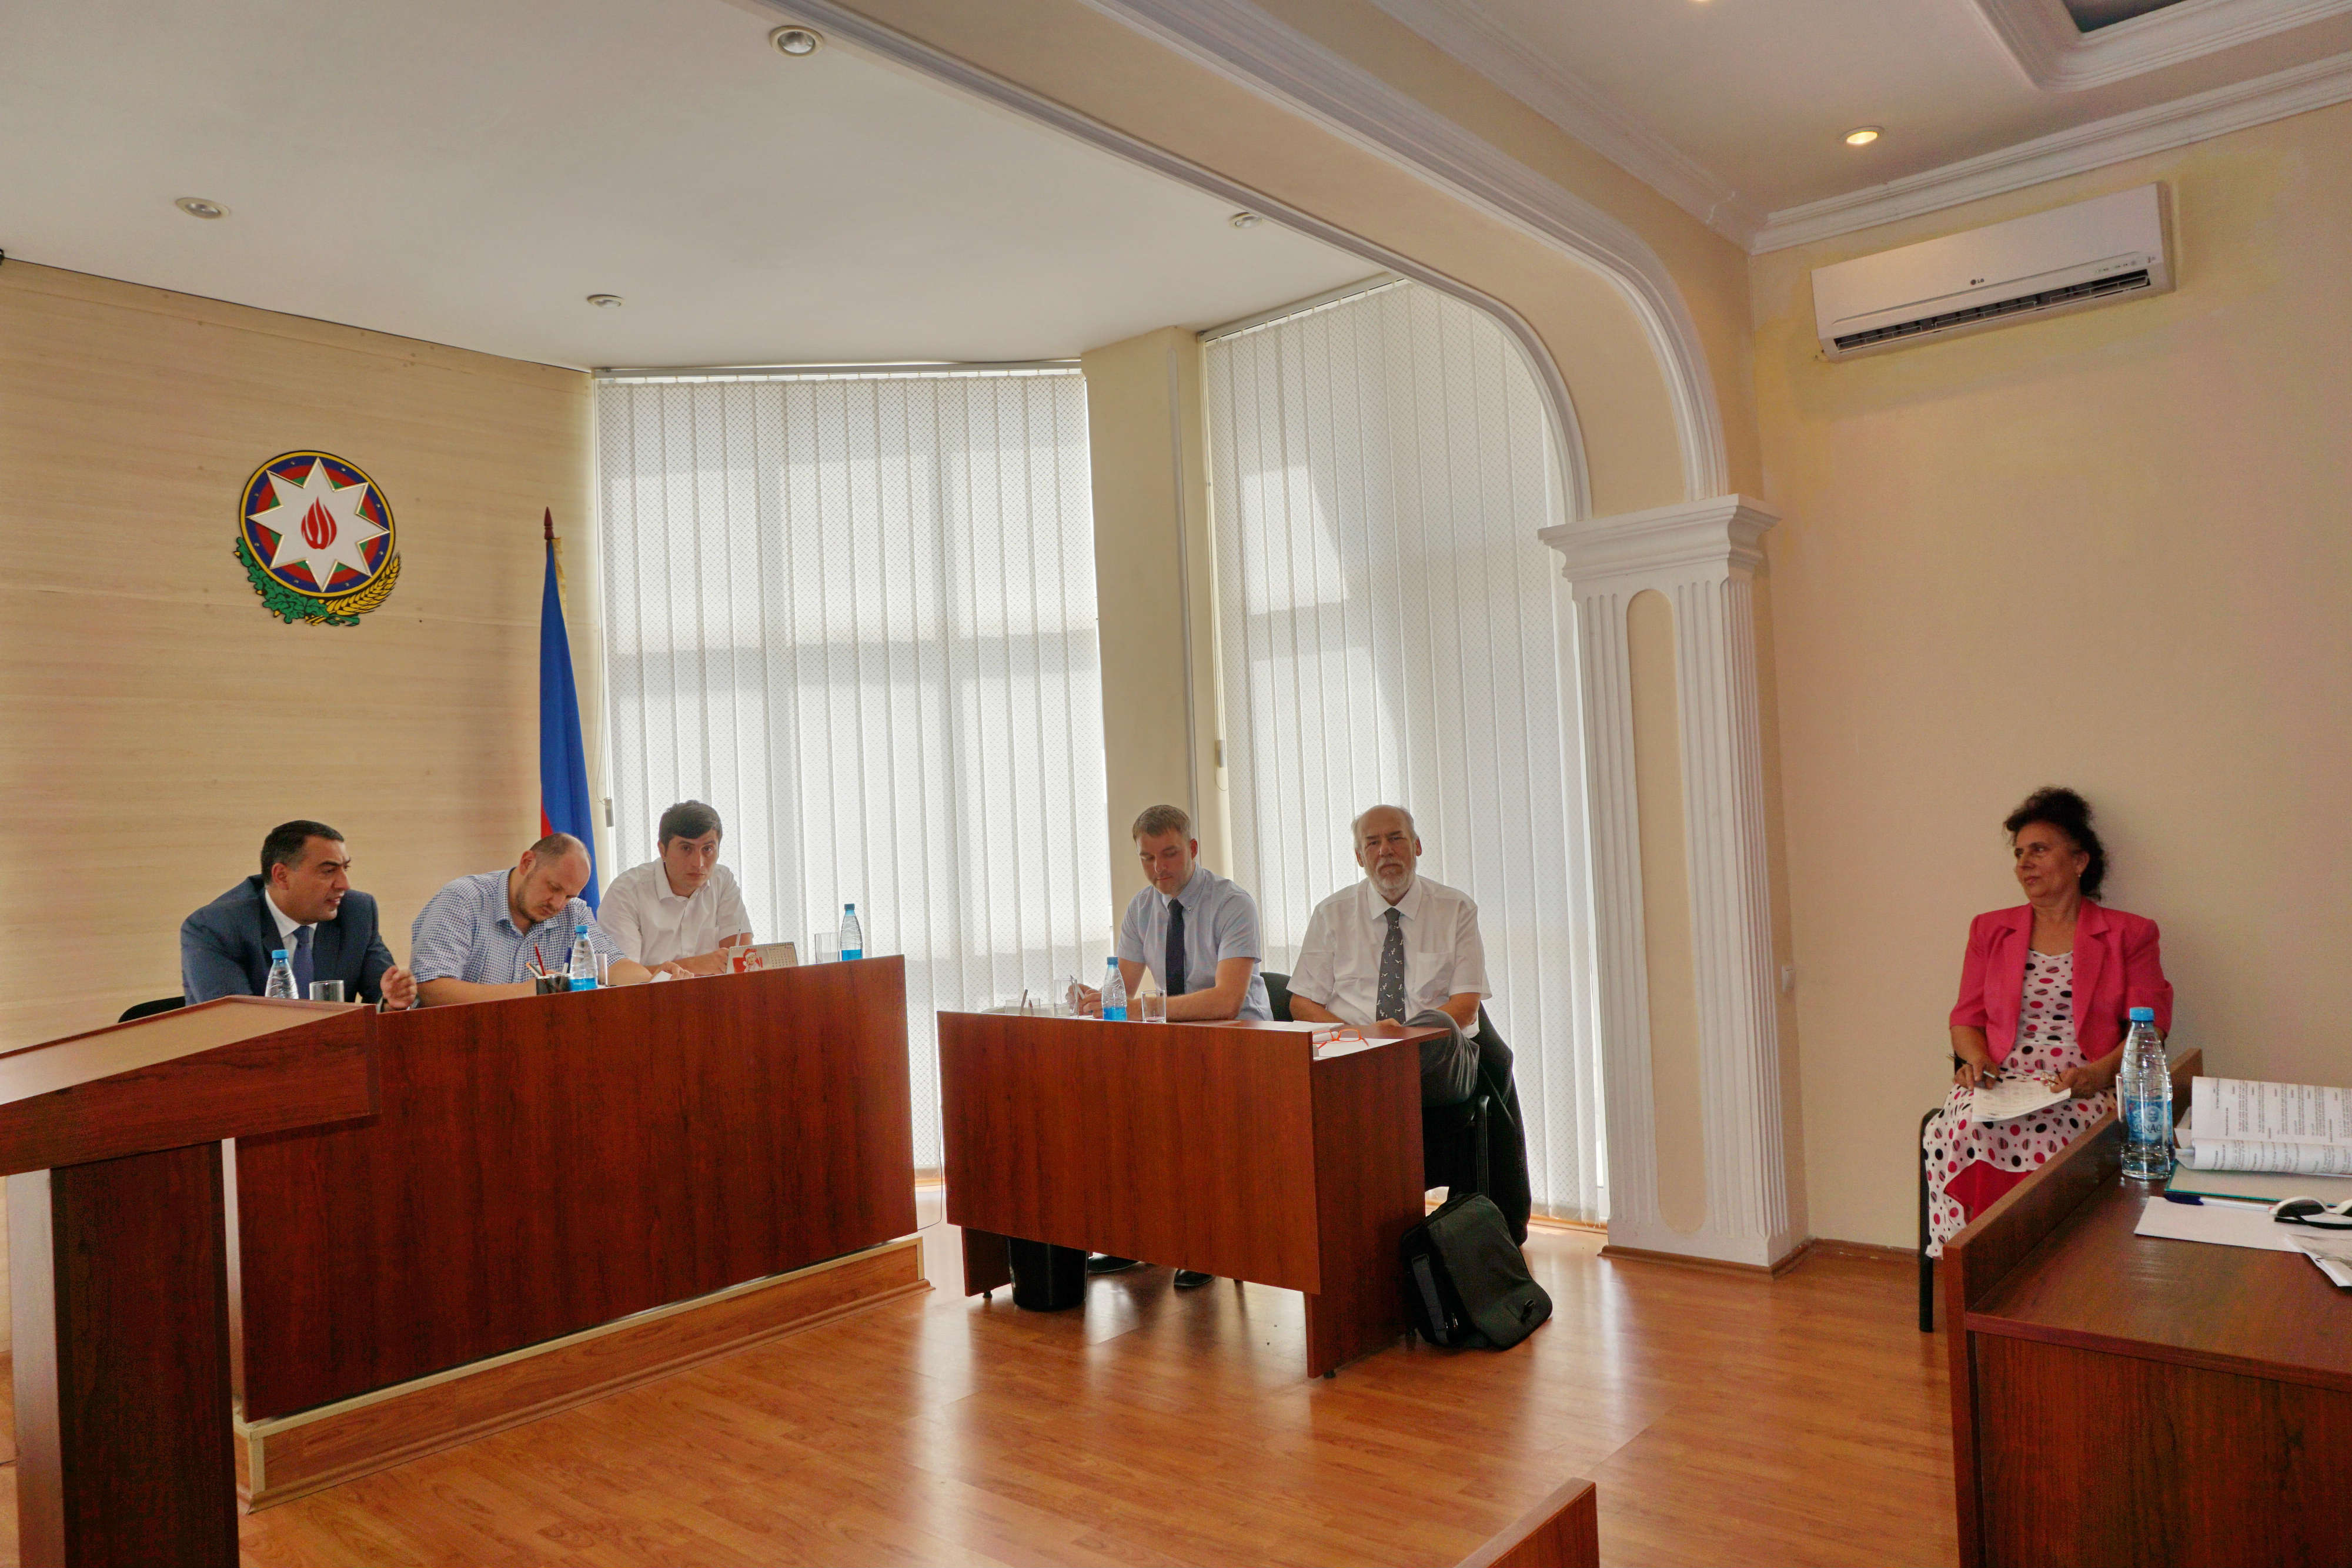 Visit to the Sumgait Administrative Economic Court 001.jpg